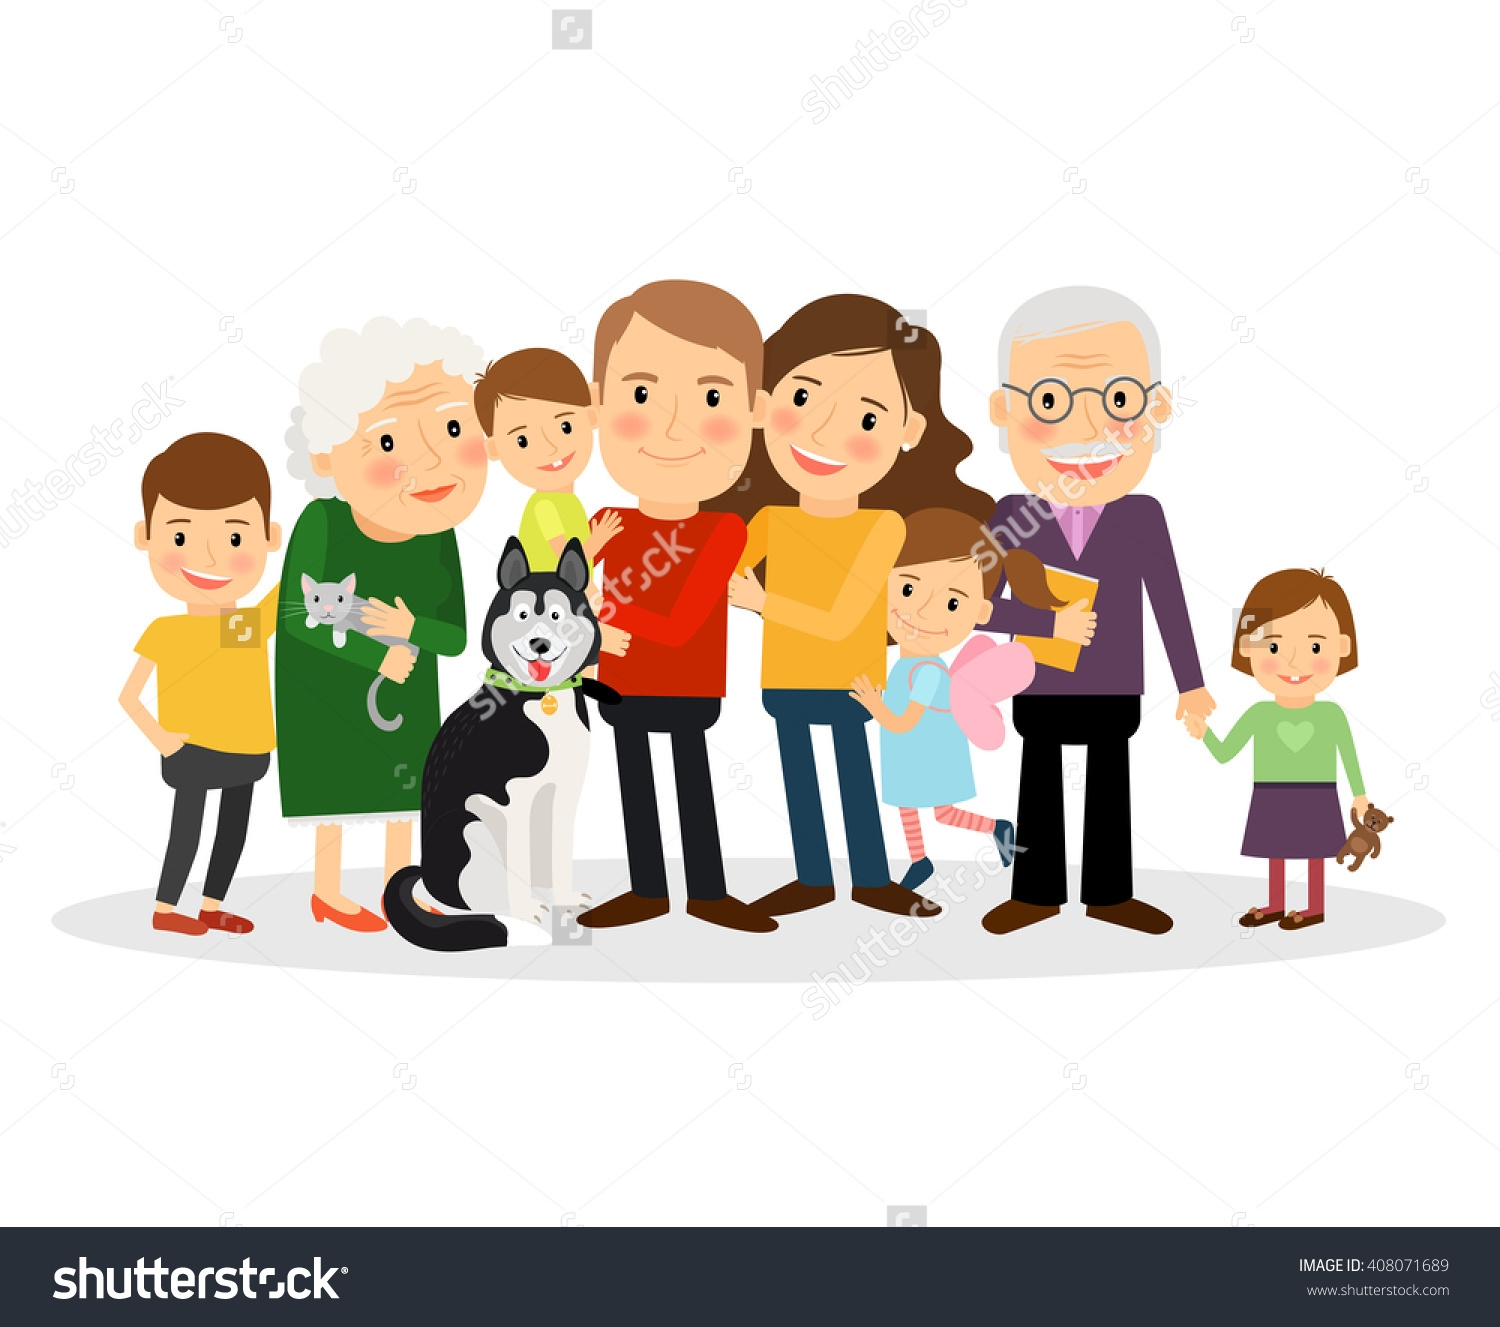 Big and small family clipart picture free download Big and small family clipart - ClipartFest picture free download